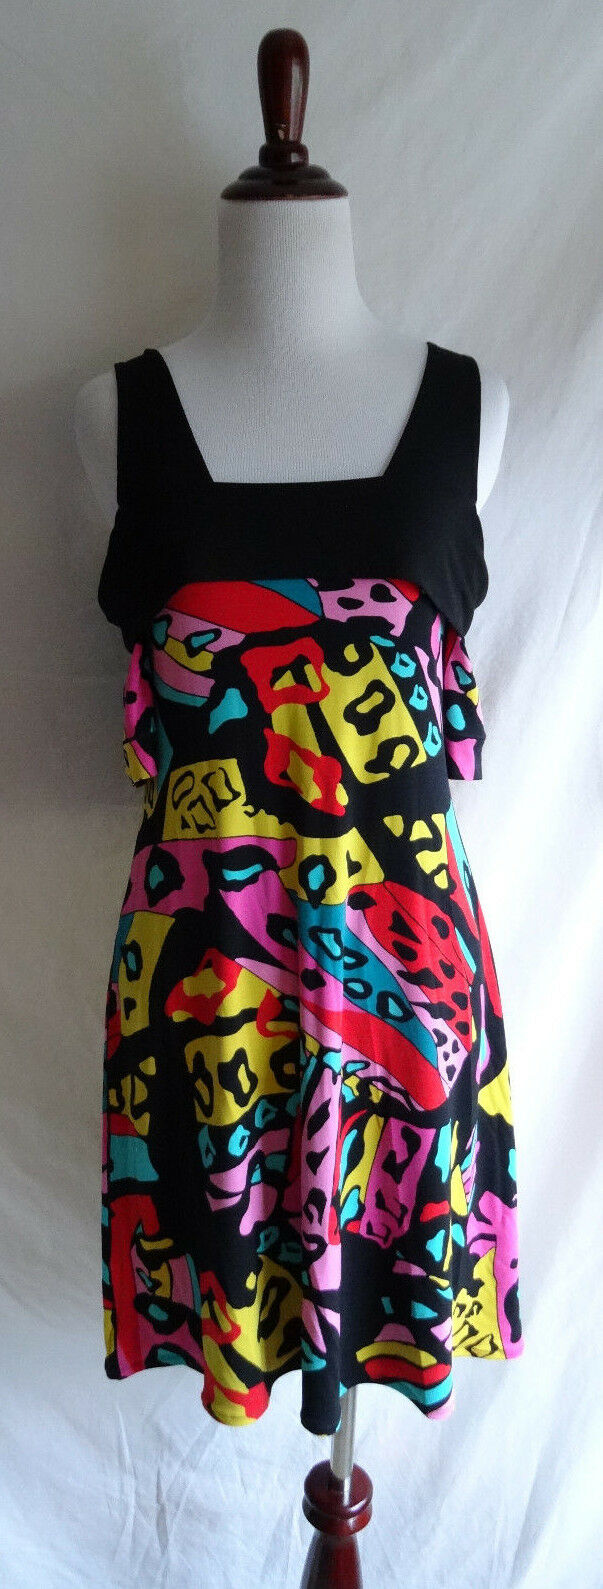 Eva Varro Small Artsy Abstract Jersey Knit Farbeful Print Cut Out Shoudler Dress